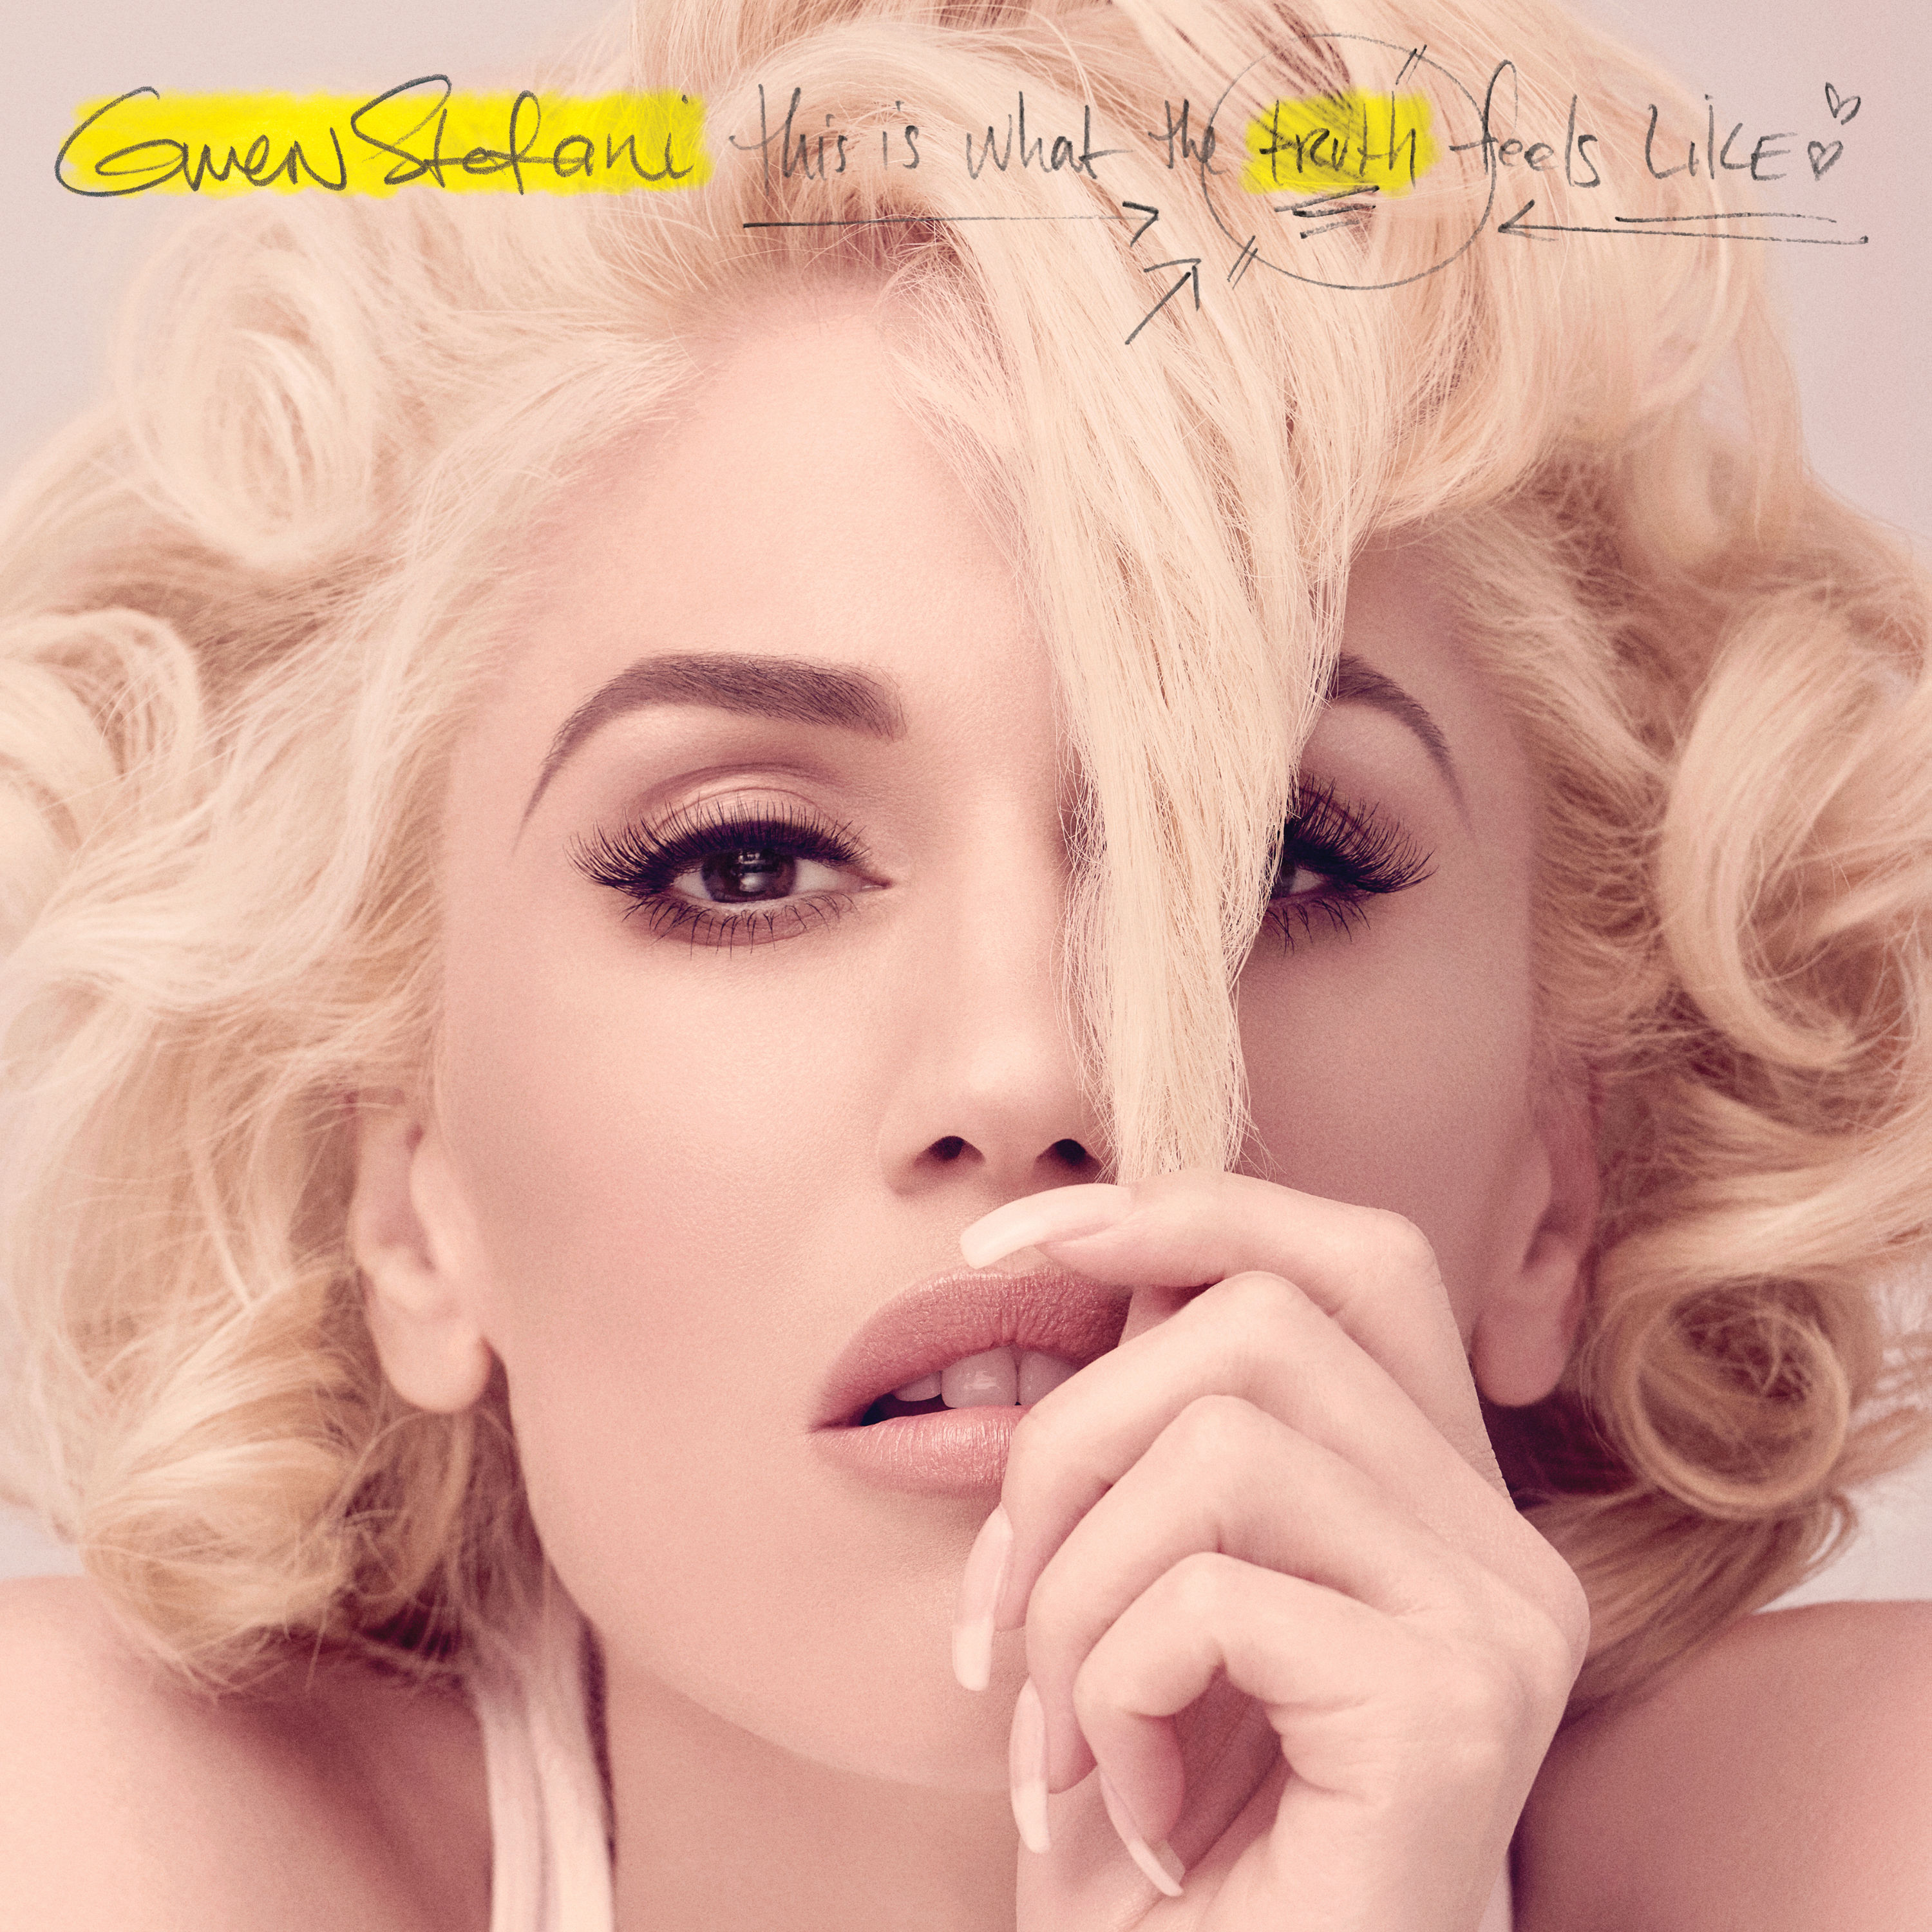 Image result for gwen stefani this is what the truth feels like